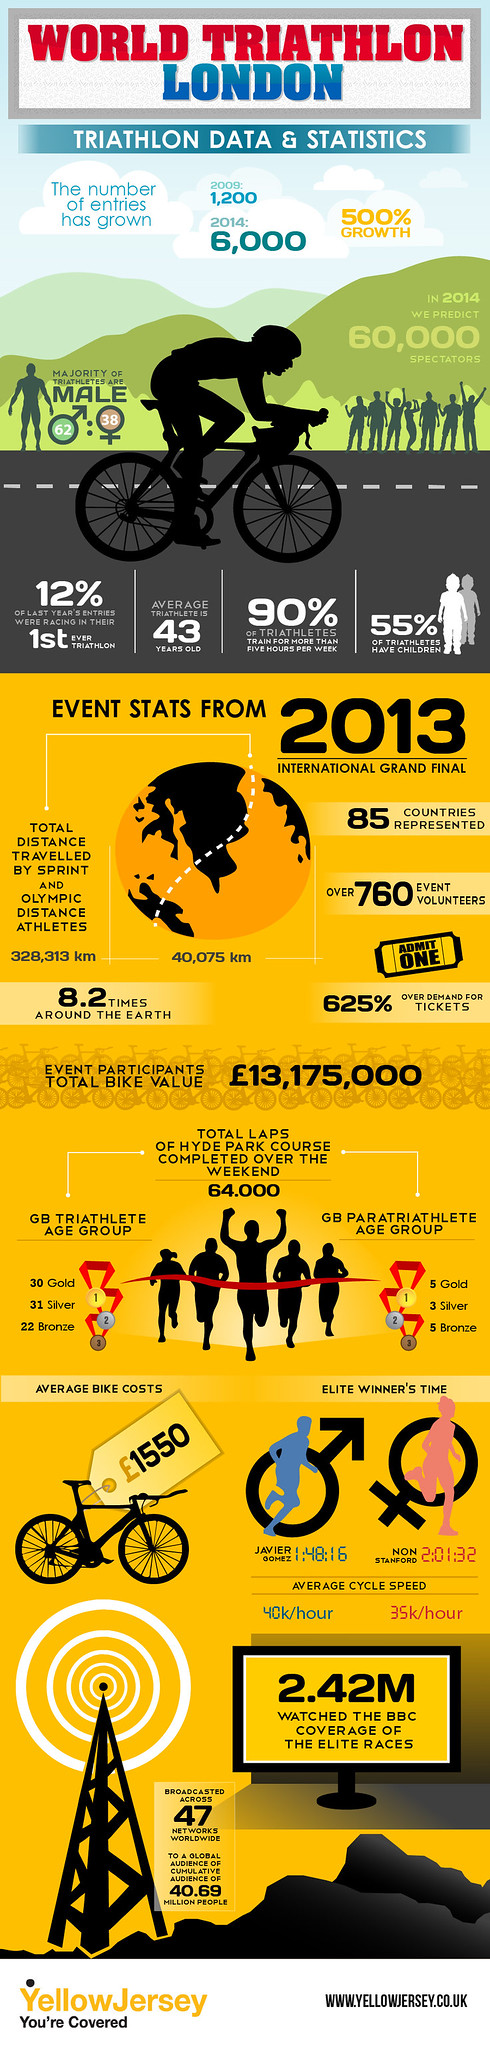 000 aaa yj Cyling_YellowJersey_Infographic (2)